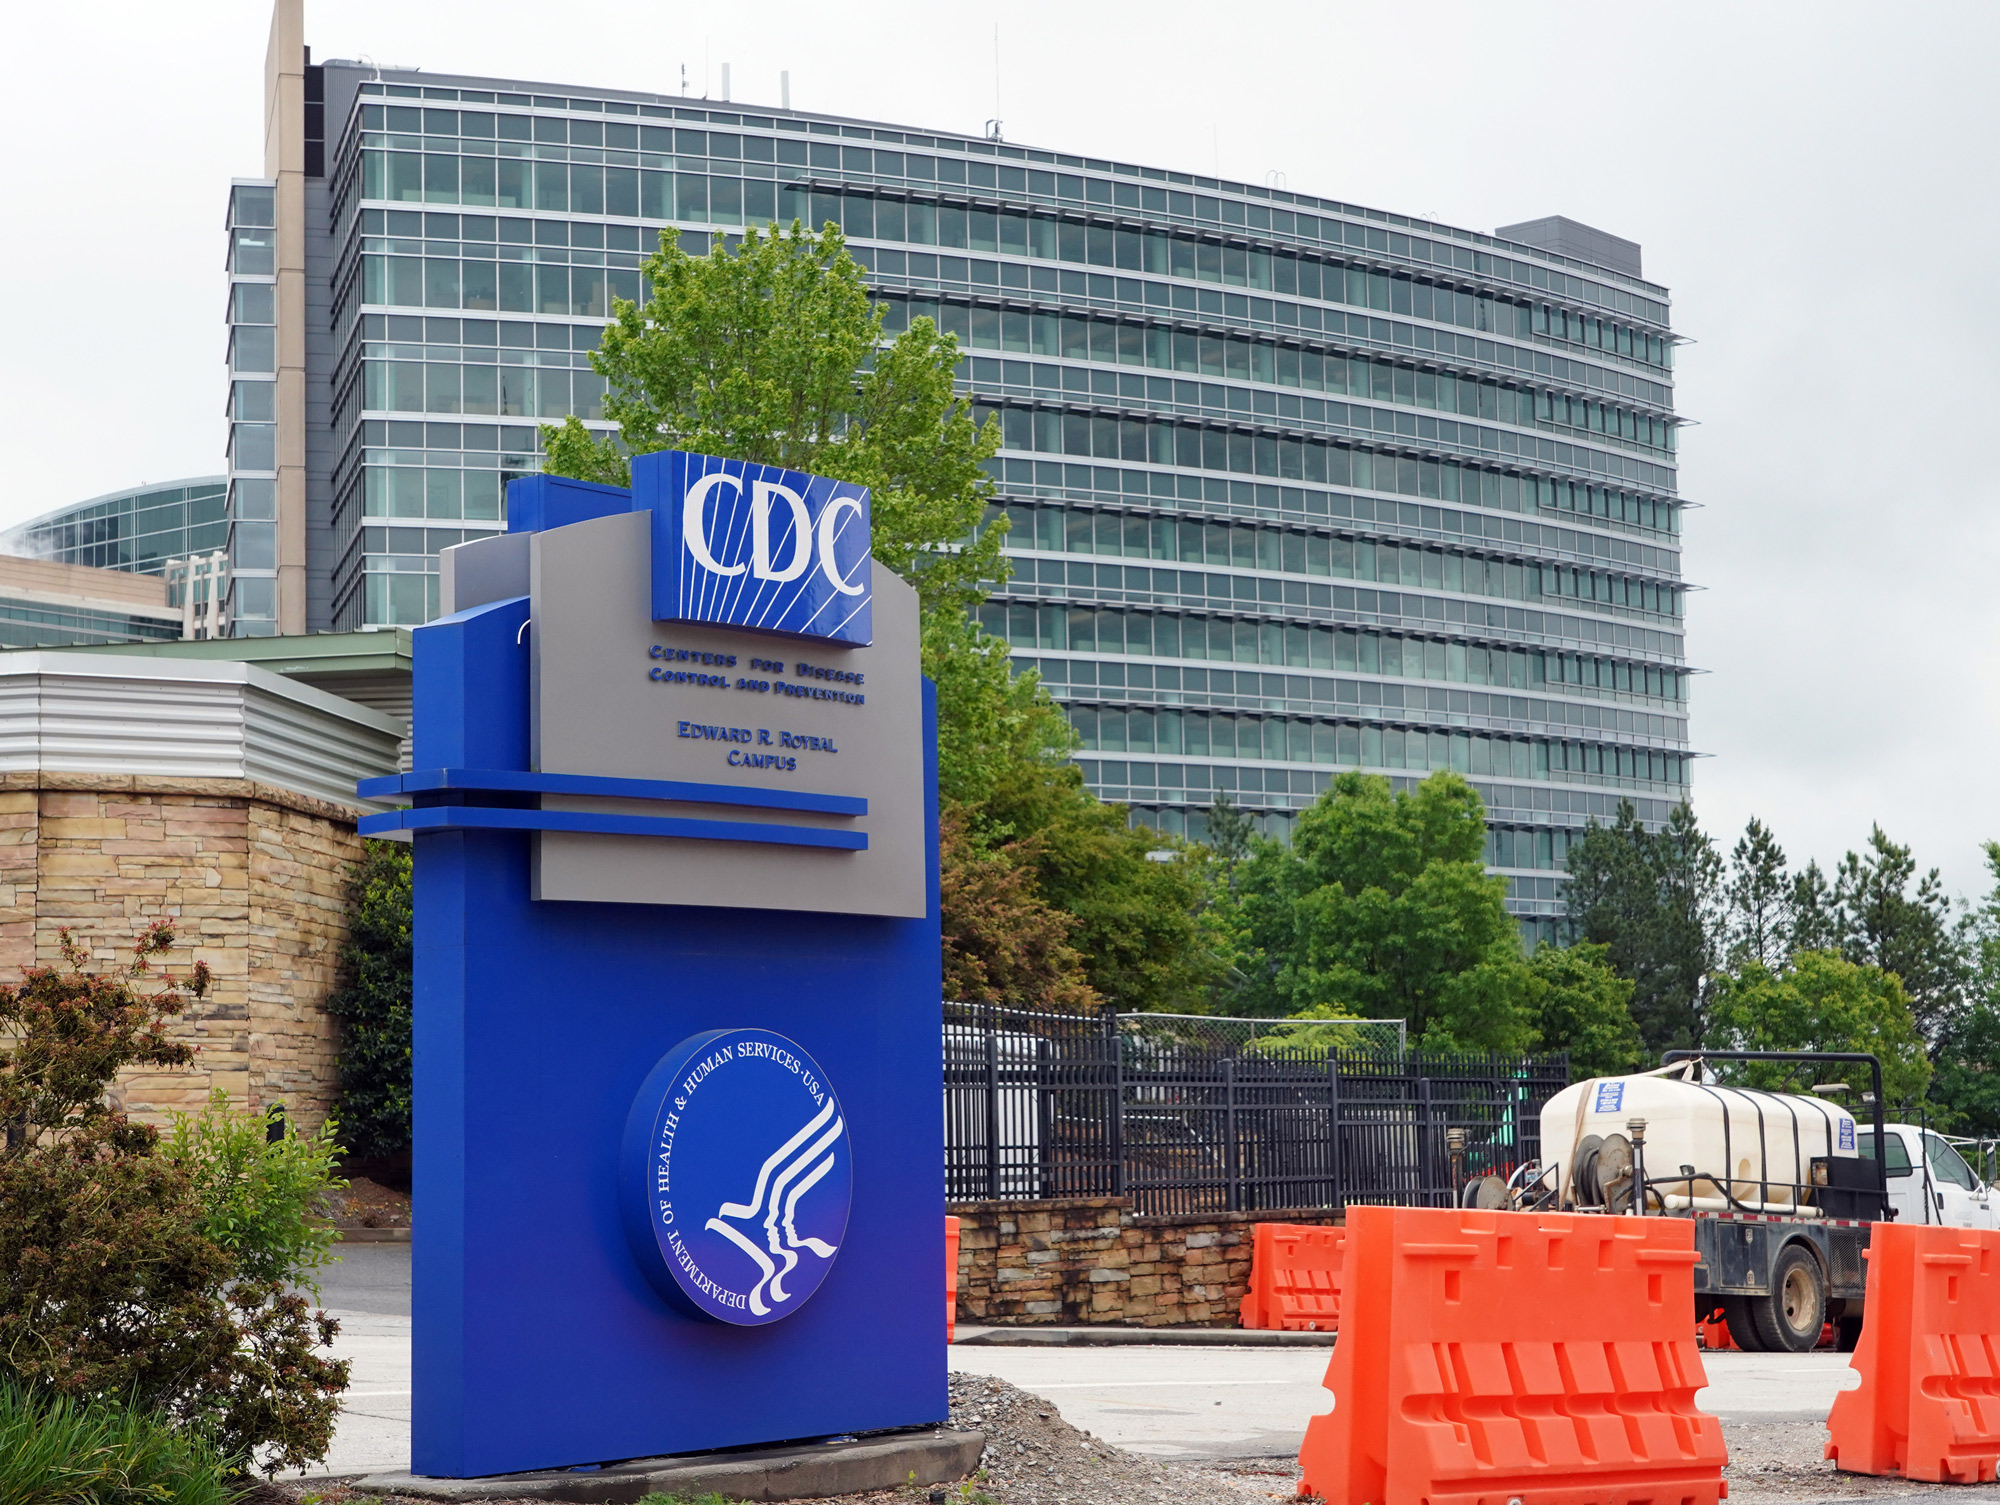 A general view of the Centers for Disease Control and Prevention Edward R. Roybal campus is seen in Atlanta on April 23.